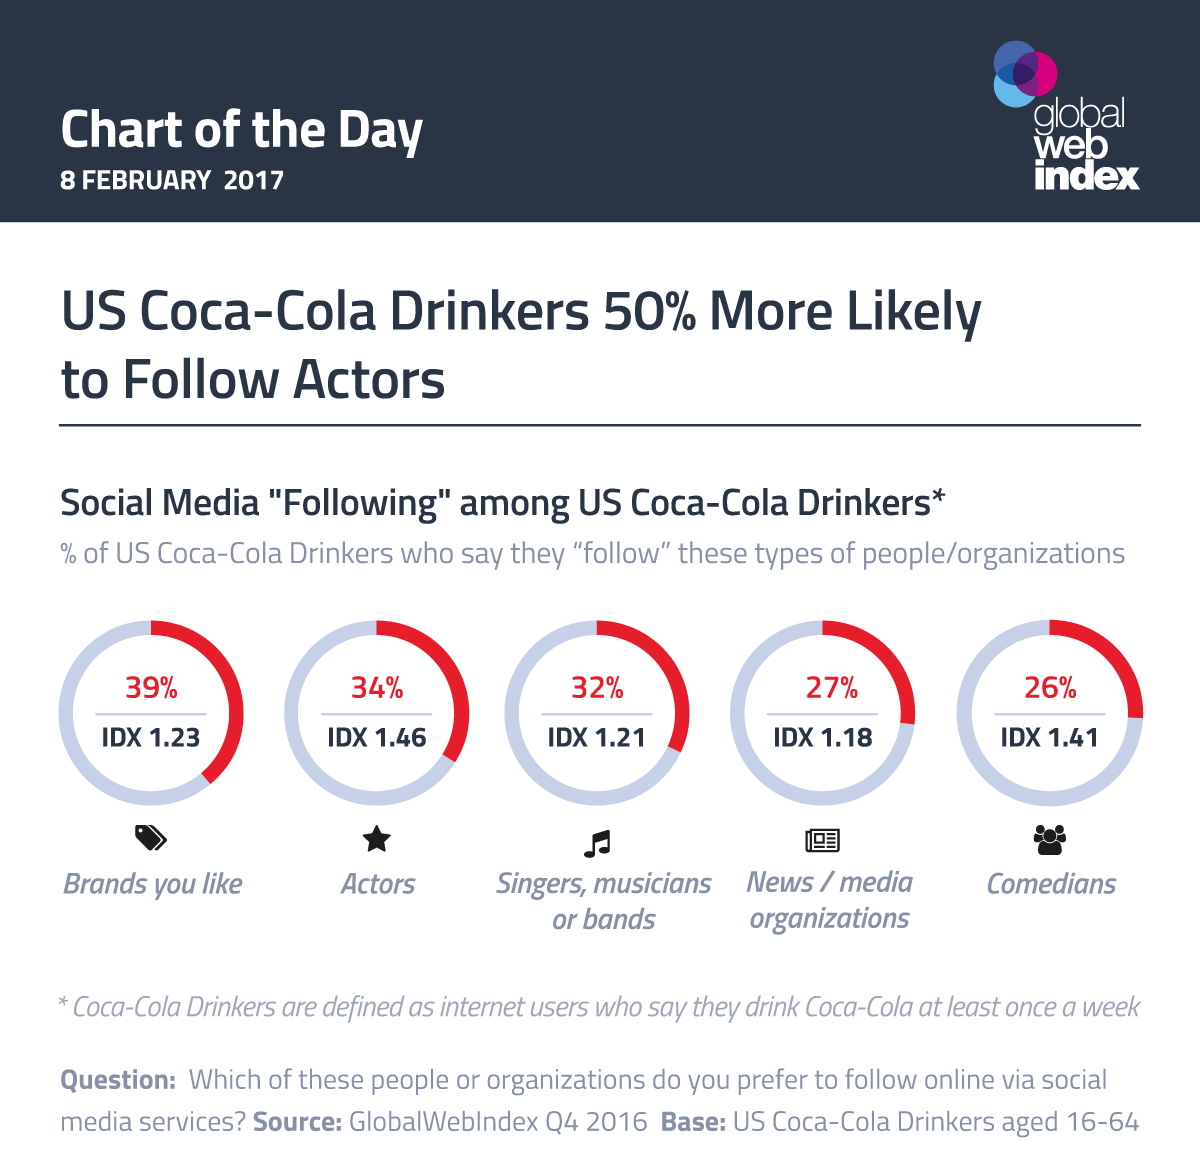 US Coca-Cola Drinkers 50% More Likely to Follow Actors